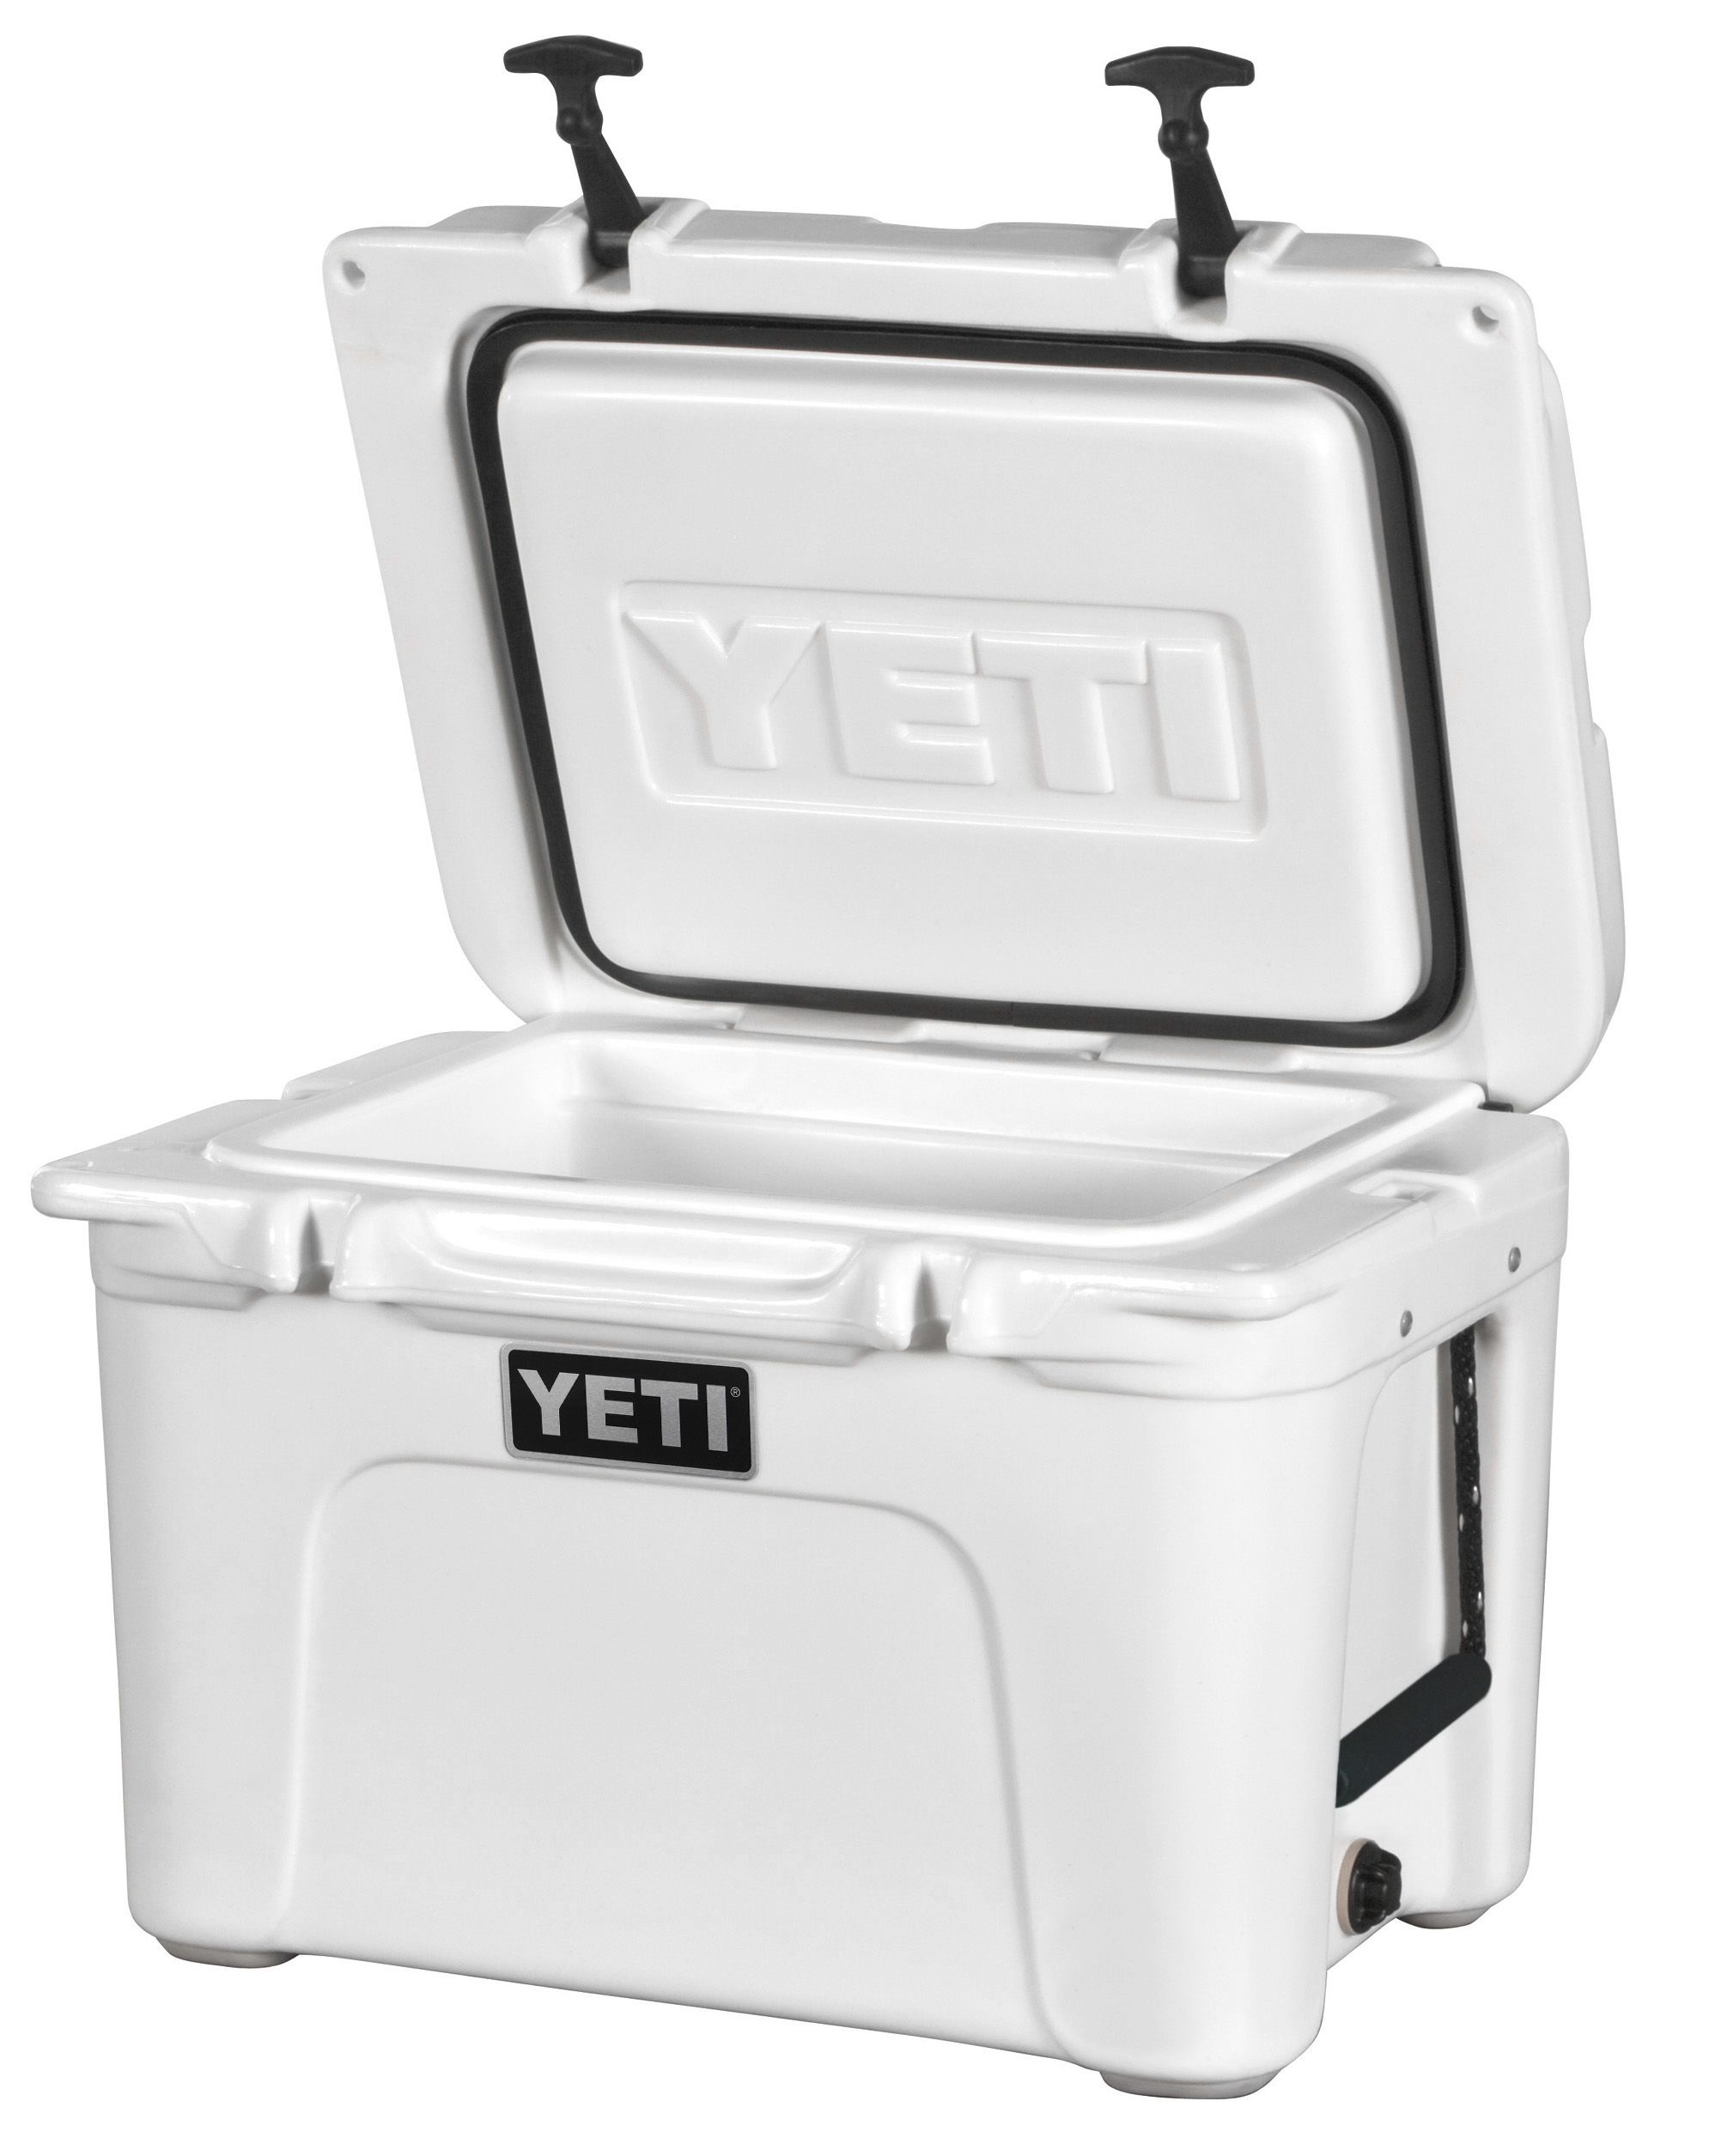 Yeti Coolers Premium Ice Chests Apparel And Gear Yeti Cooler Yeti Tundra Yeti Coolers